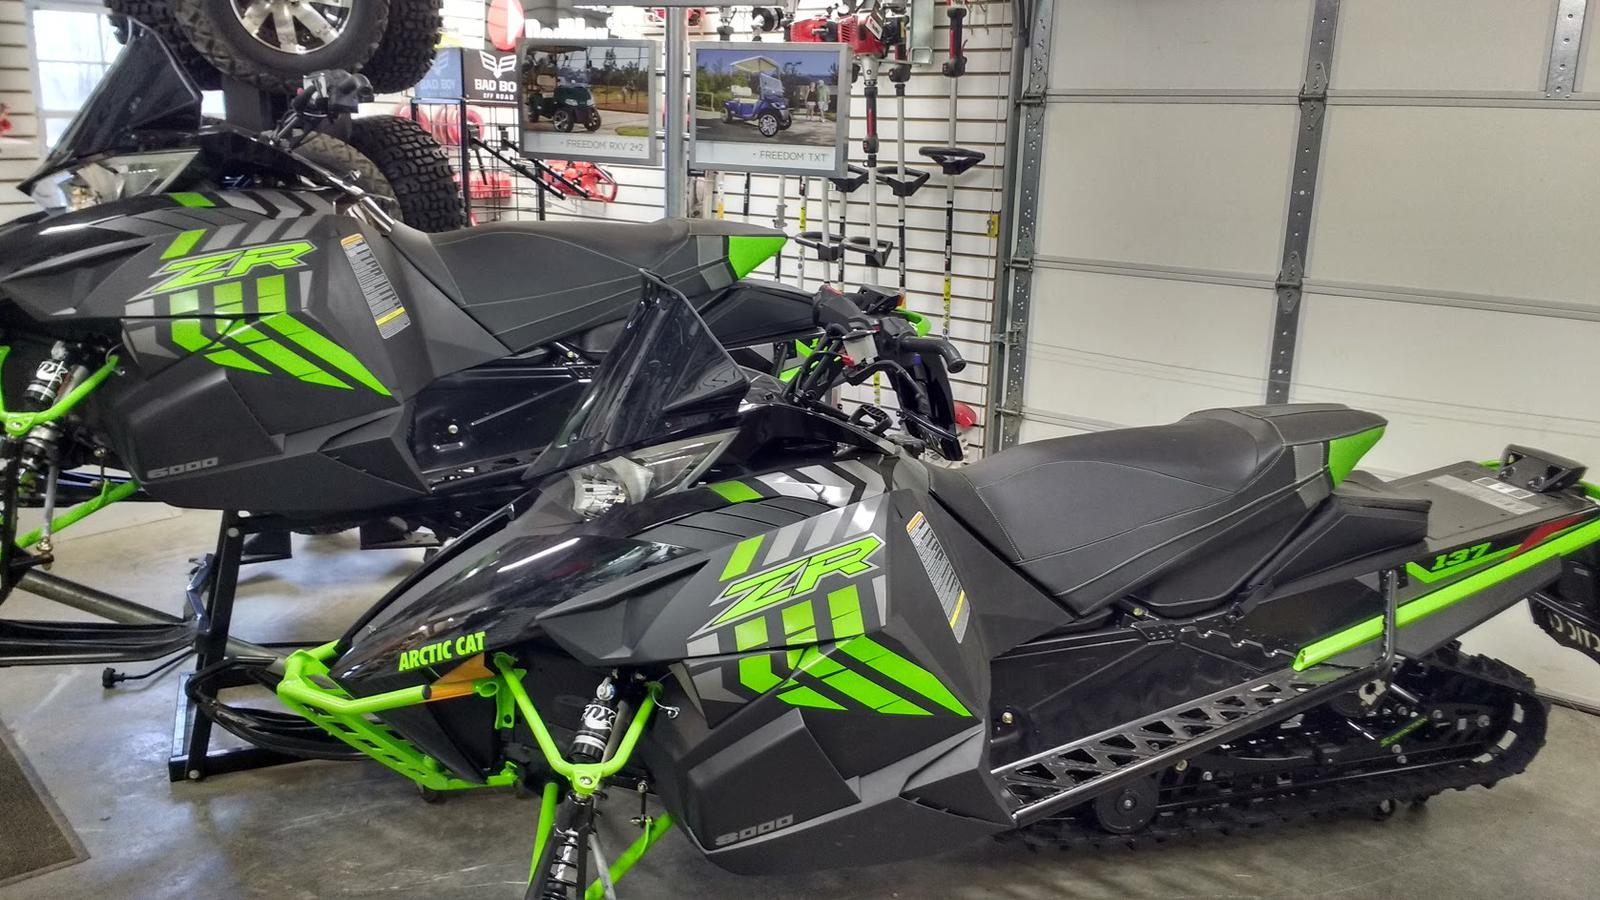 2017 Zr 9000 Limited 137 Arctic Cat